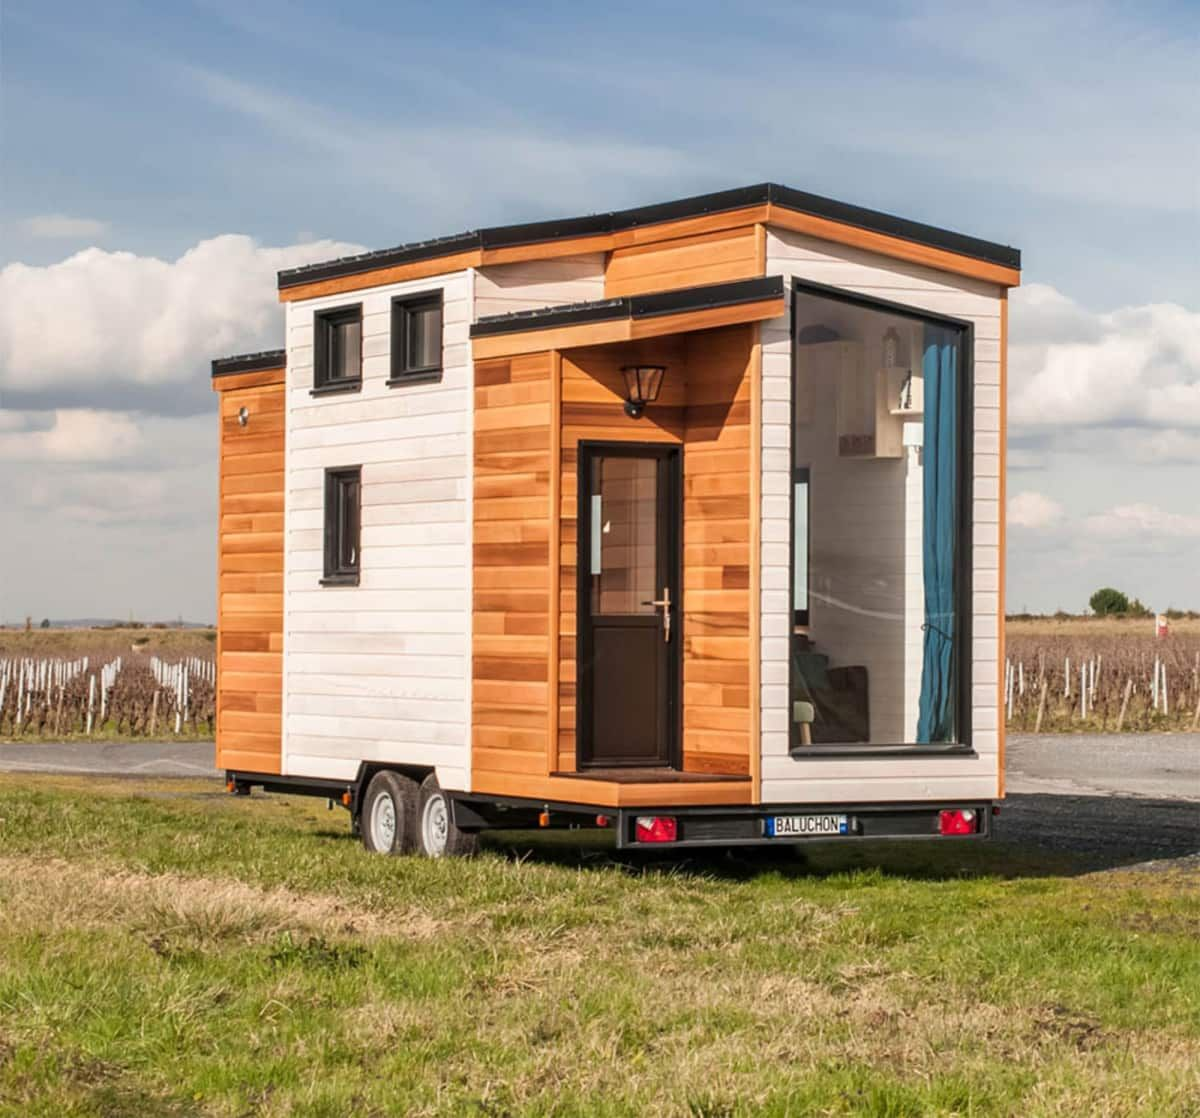 Magic Tiny Houses Where Life Becomes Simple Tiny House For Rent In Mobile Alabama Tiny House Li Tiny Houses For Rent Tiny House Design Tiny Mobile House